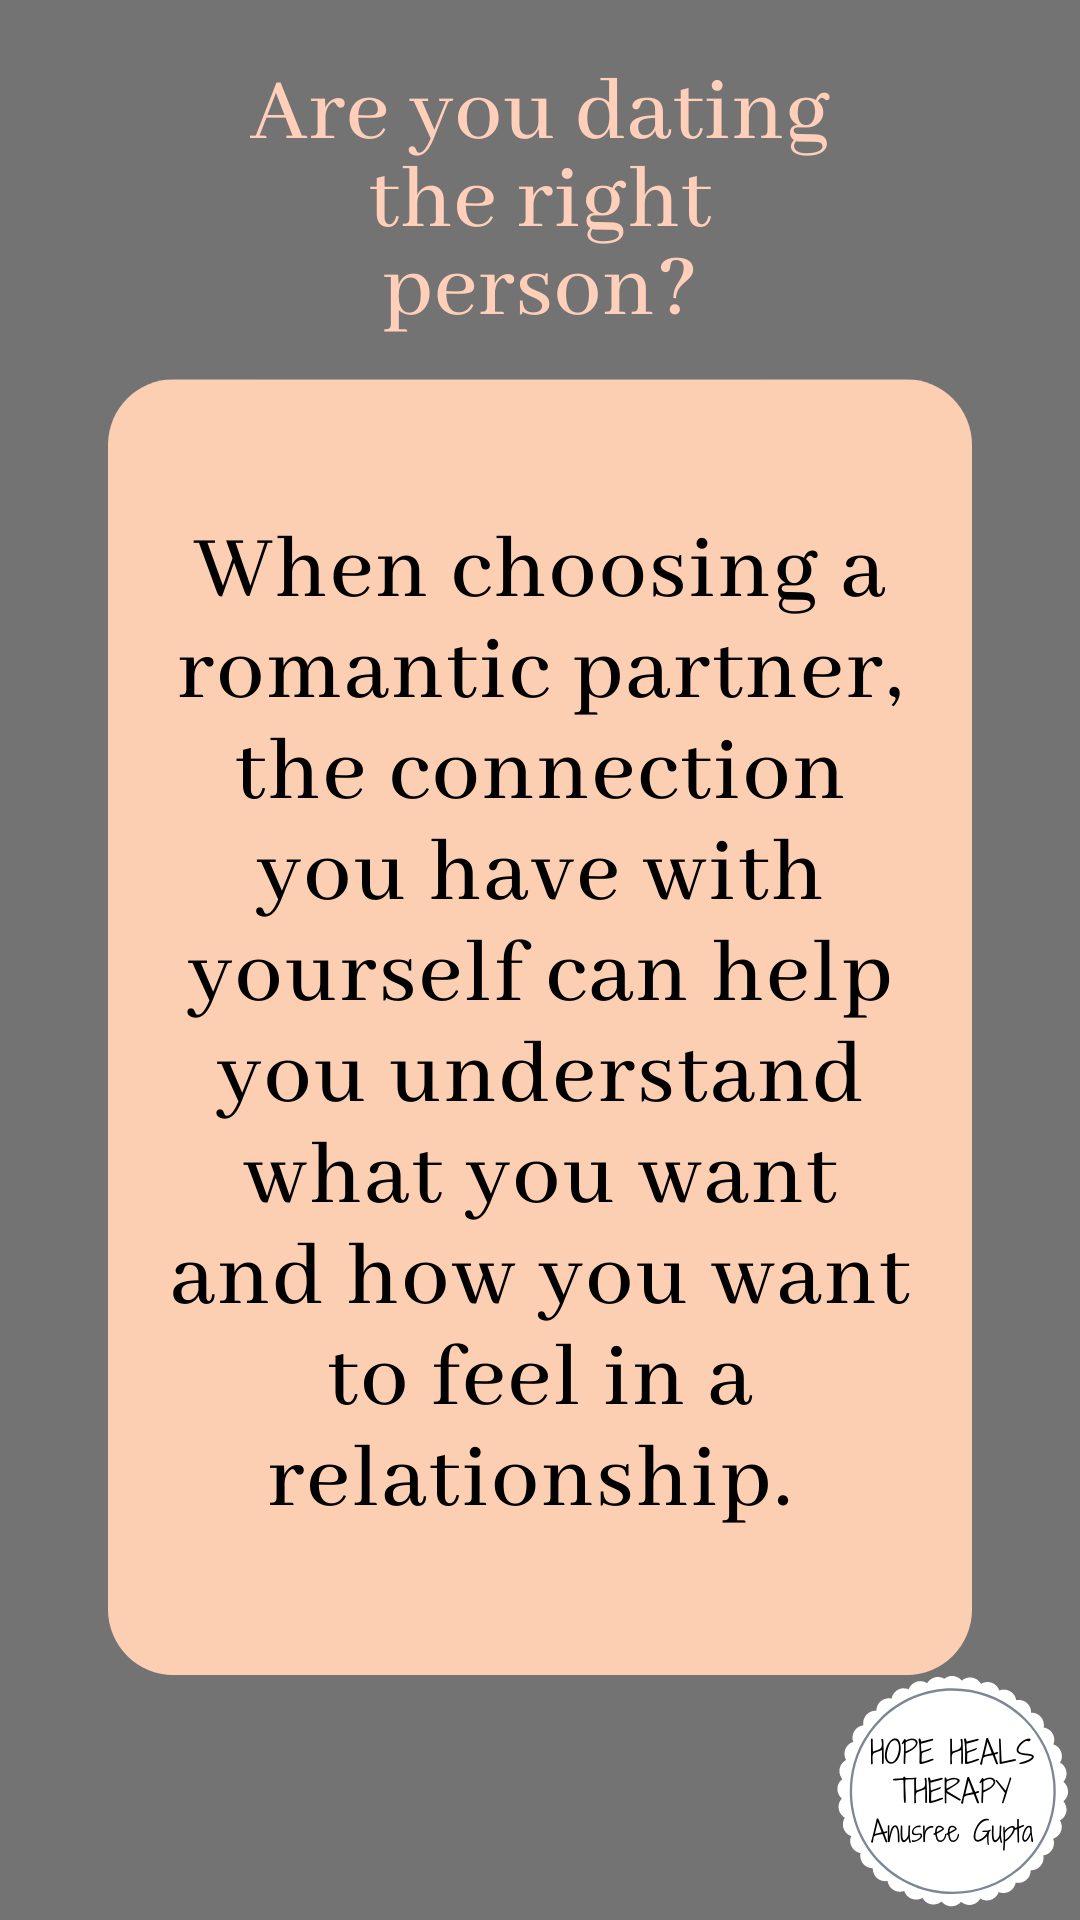 Individual-counseling-for-relationship-issues